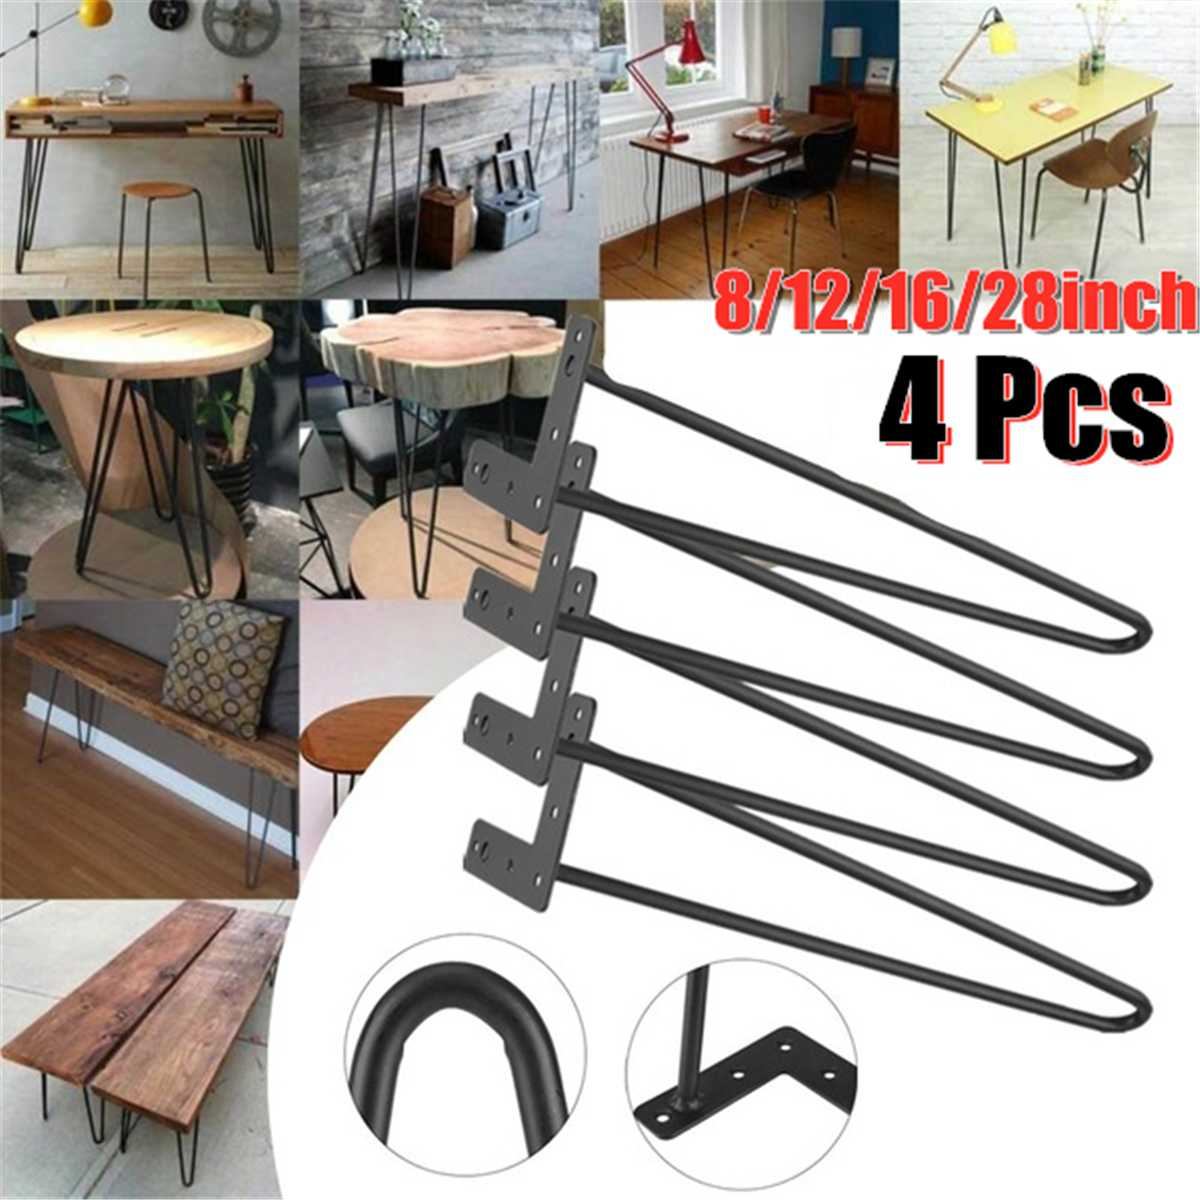 4Pcs Hairpin Table Desk Leg DIY Handcrafts Solid Iron Wire Support Leg For Sofa Cabinet Chairs Furniture Hardware 8/12/16/28inch